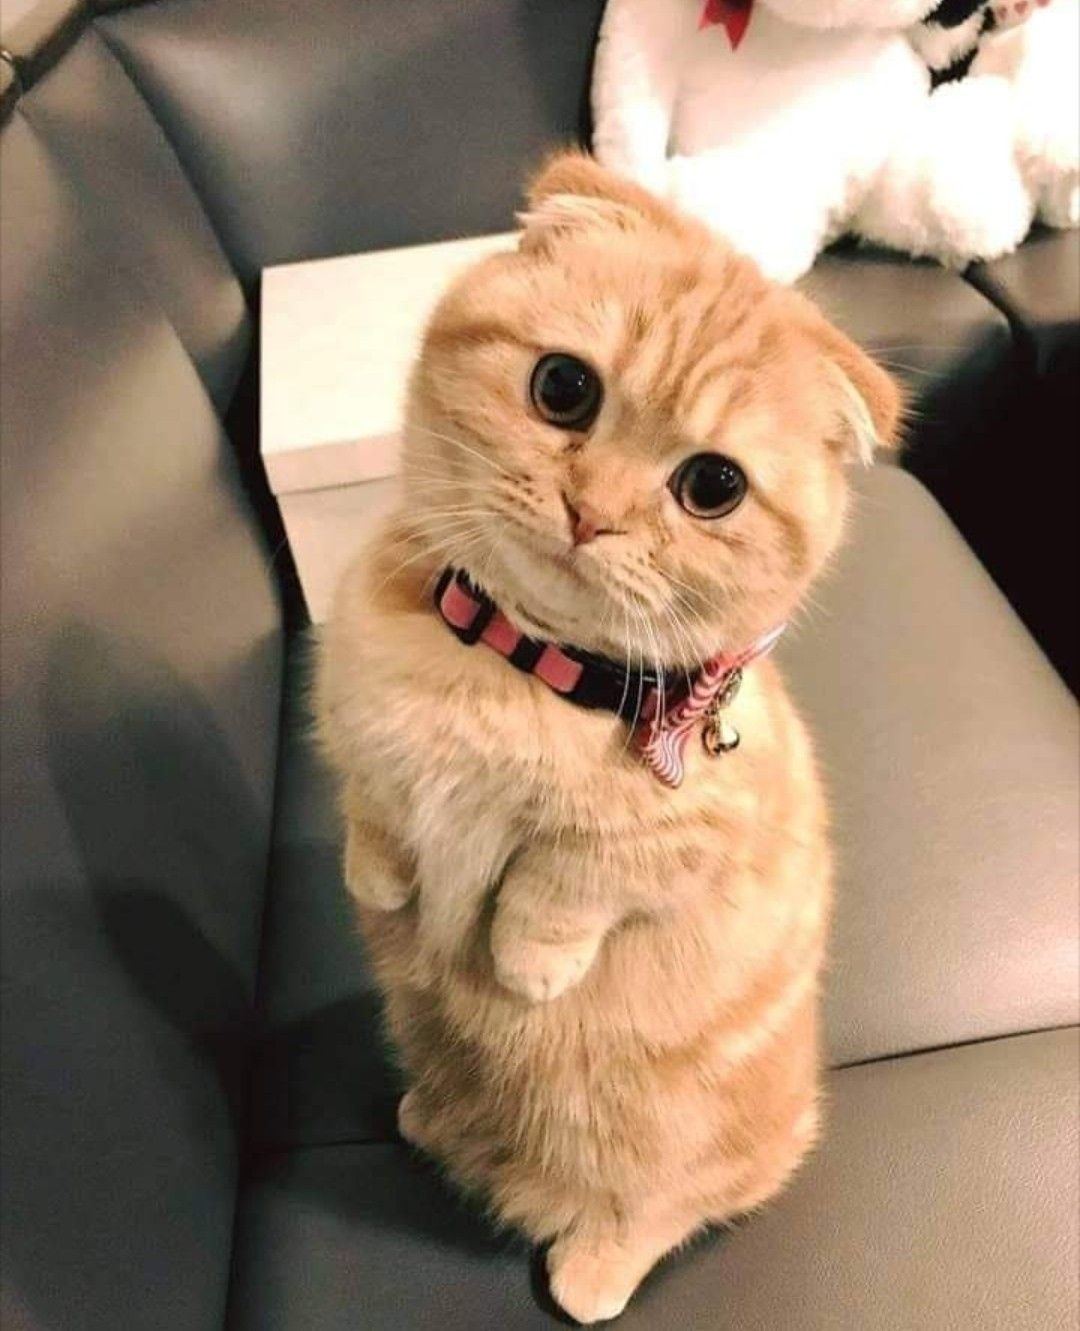 Humor Kucing Lucu Humor Kucing In 2020 Cute Baby Cats Baby Cats Cute Cats And Kittens